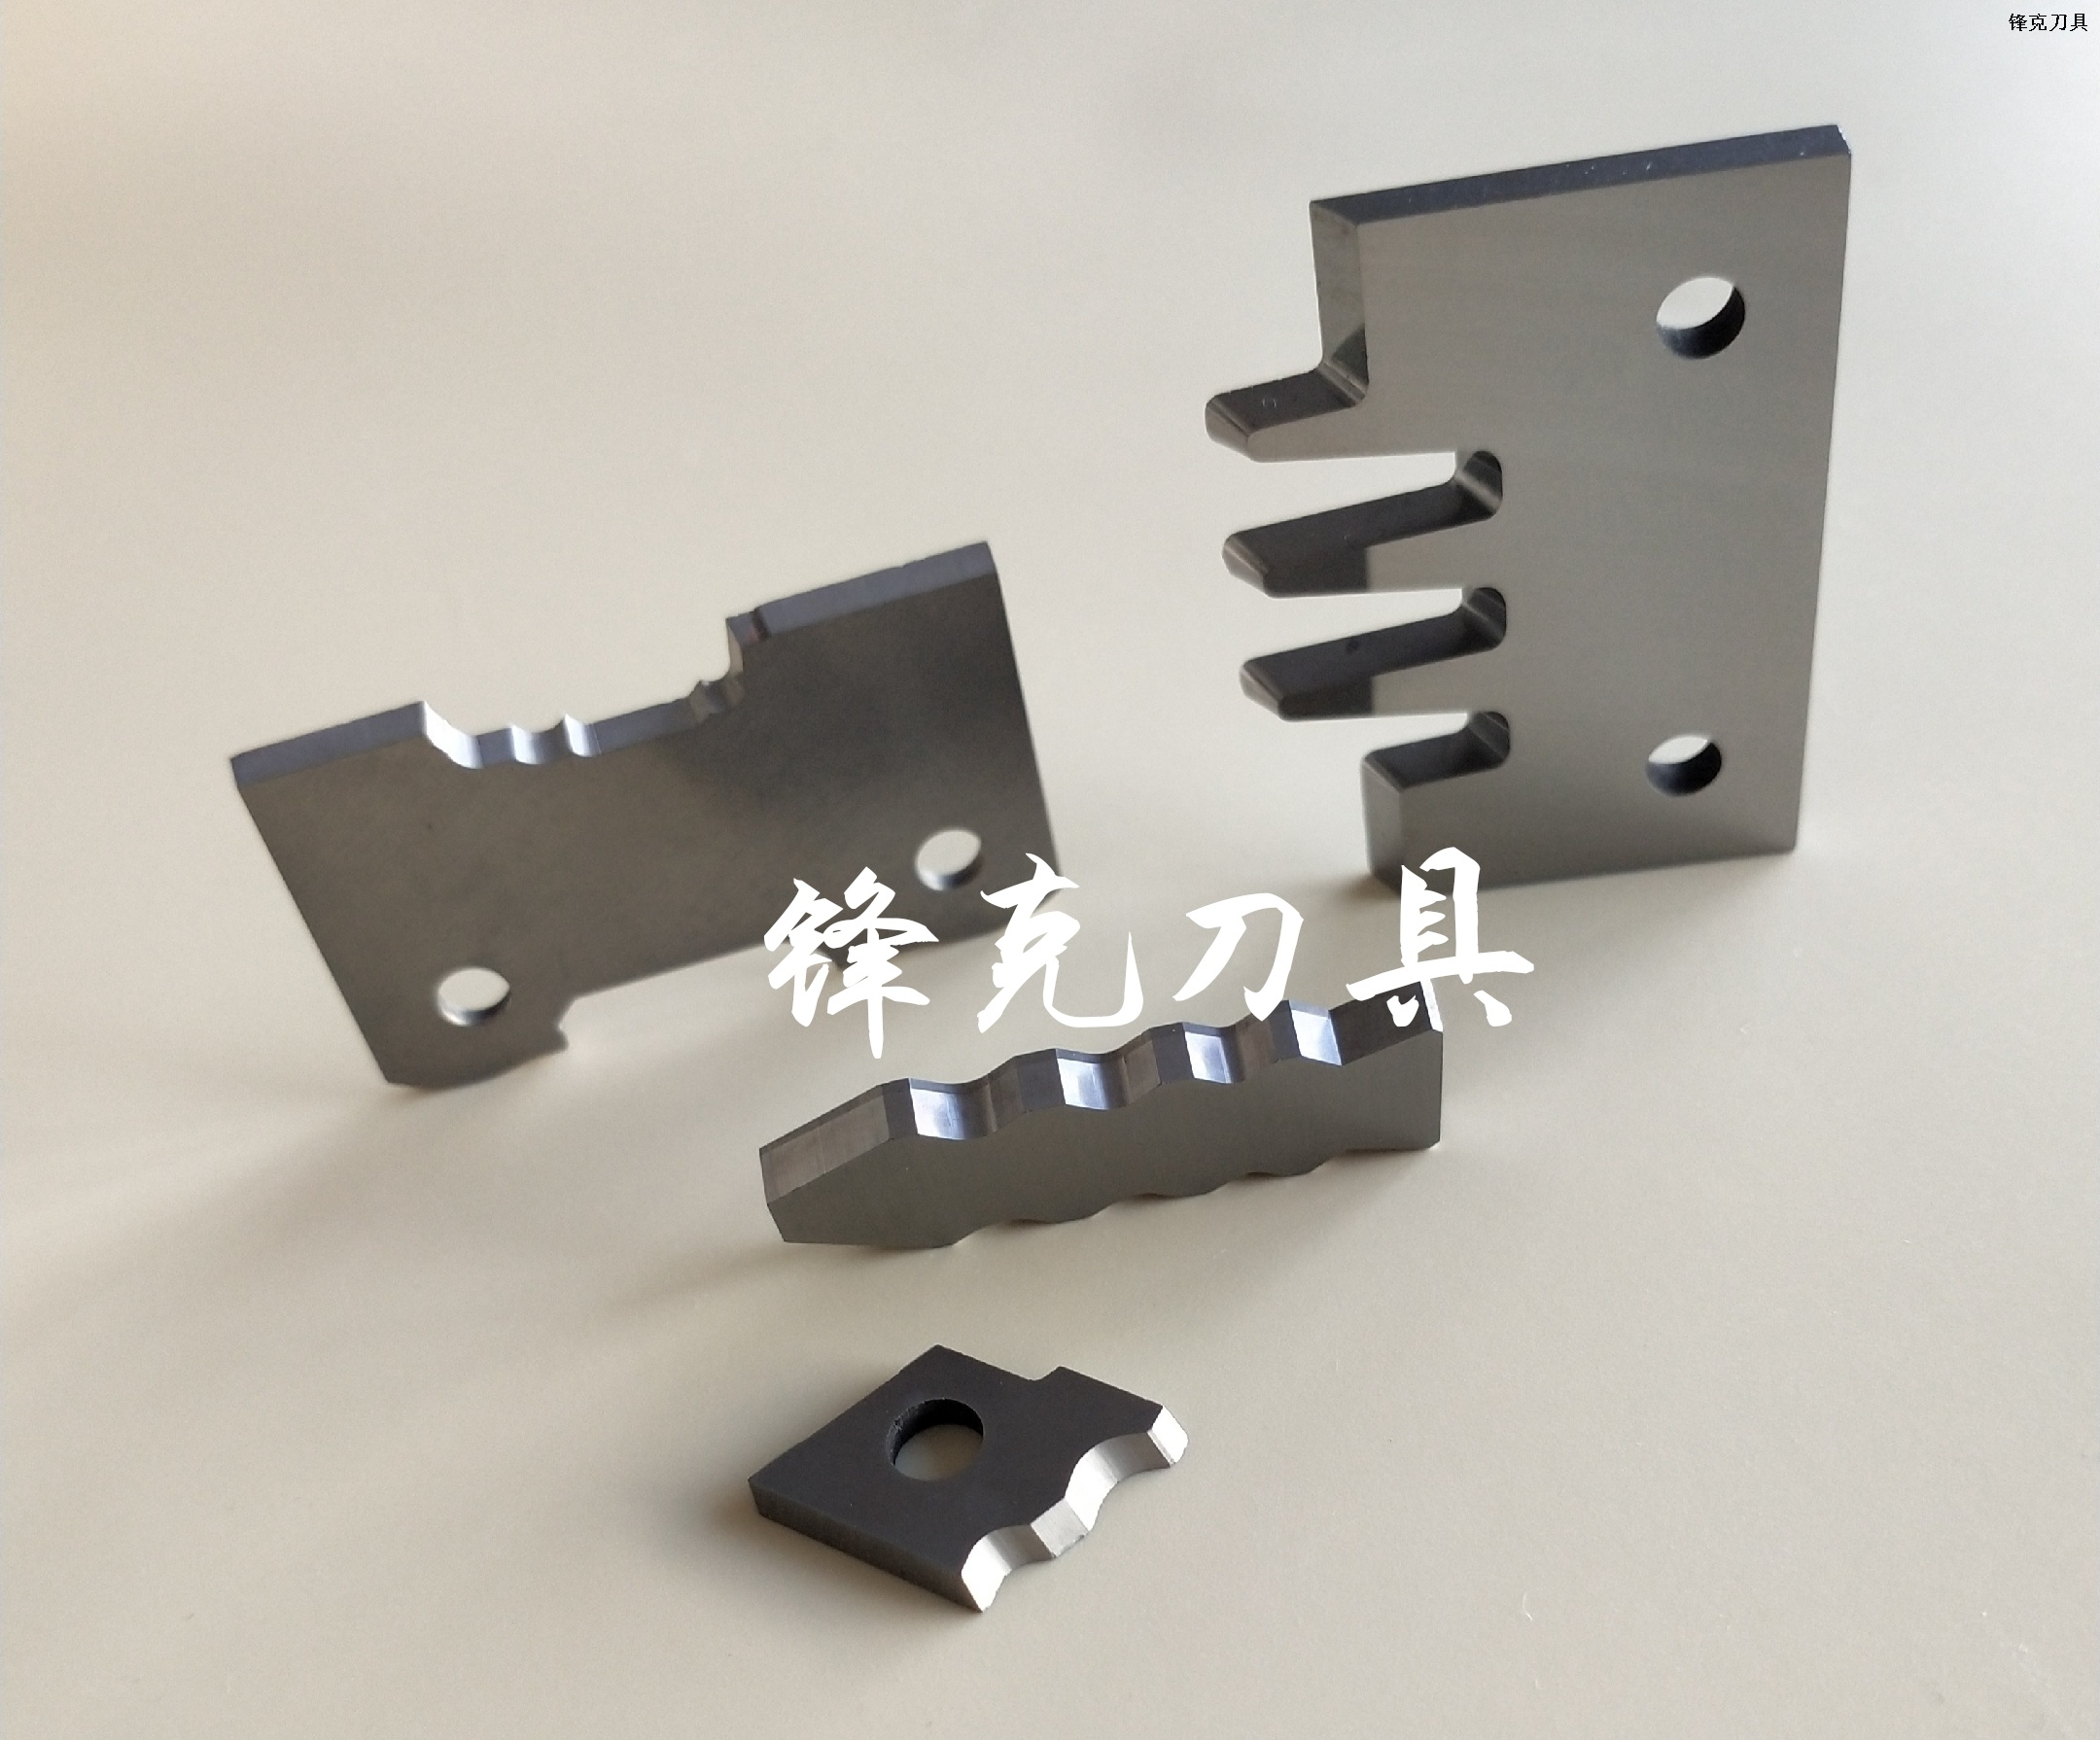 Sharper cutter profiles